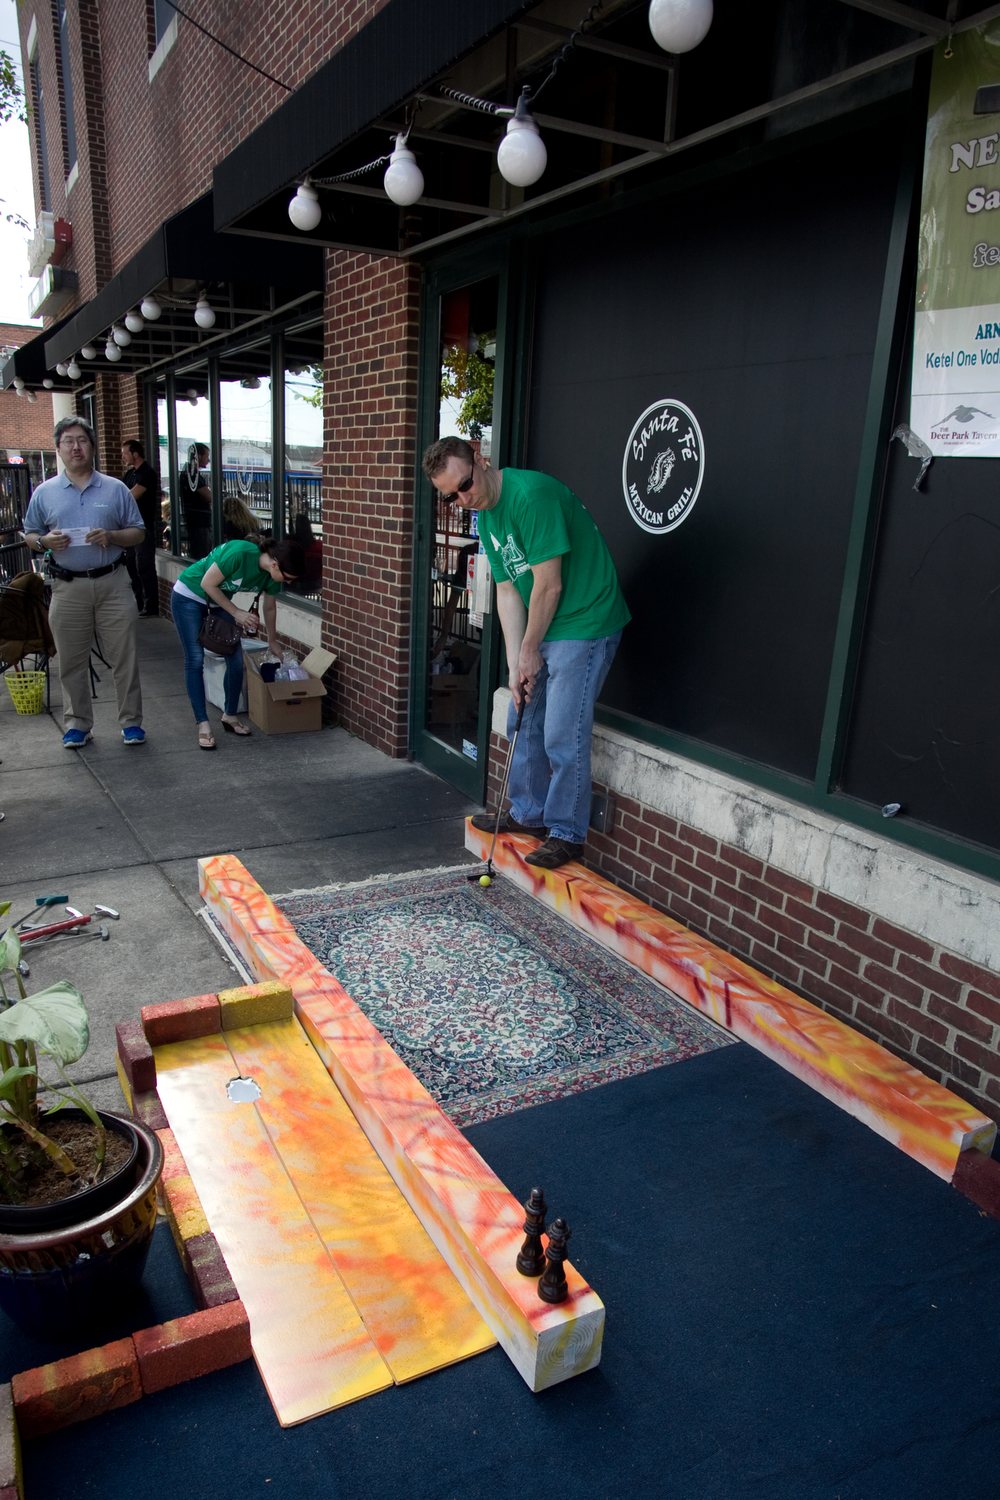 Delaware Jaycees Pub Putt in Newark, Delaware on September 20, 2014